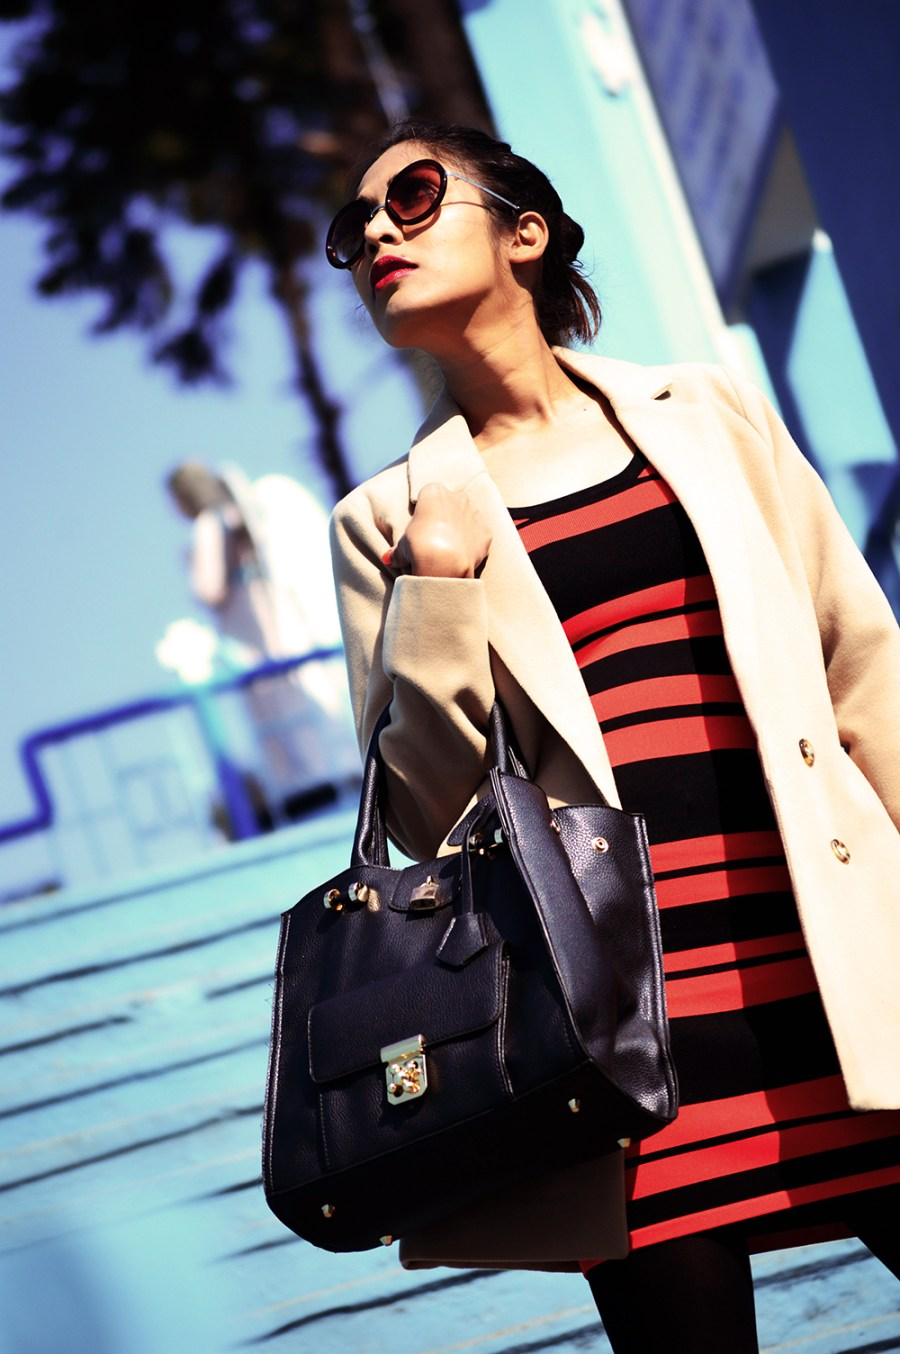 Fashion, Style, Indian Fashion color, Striped Dress, Color, Photography, Street Style, Winter Fashion, Beauty-2